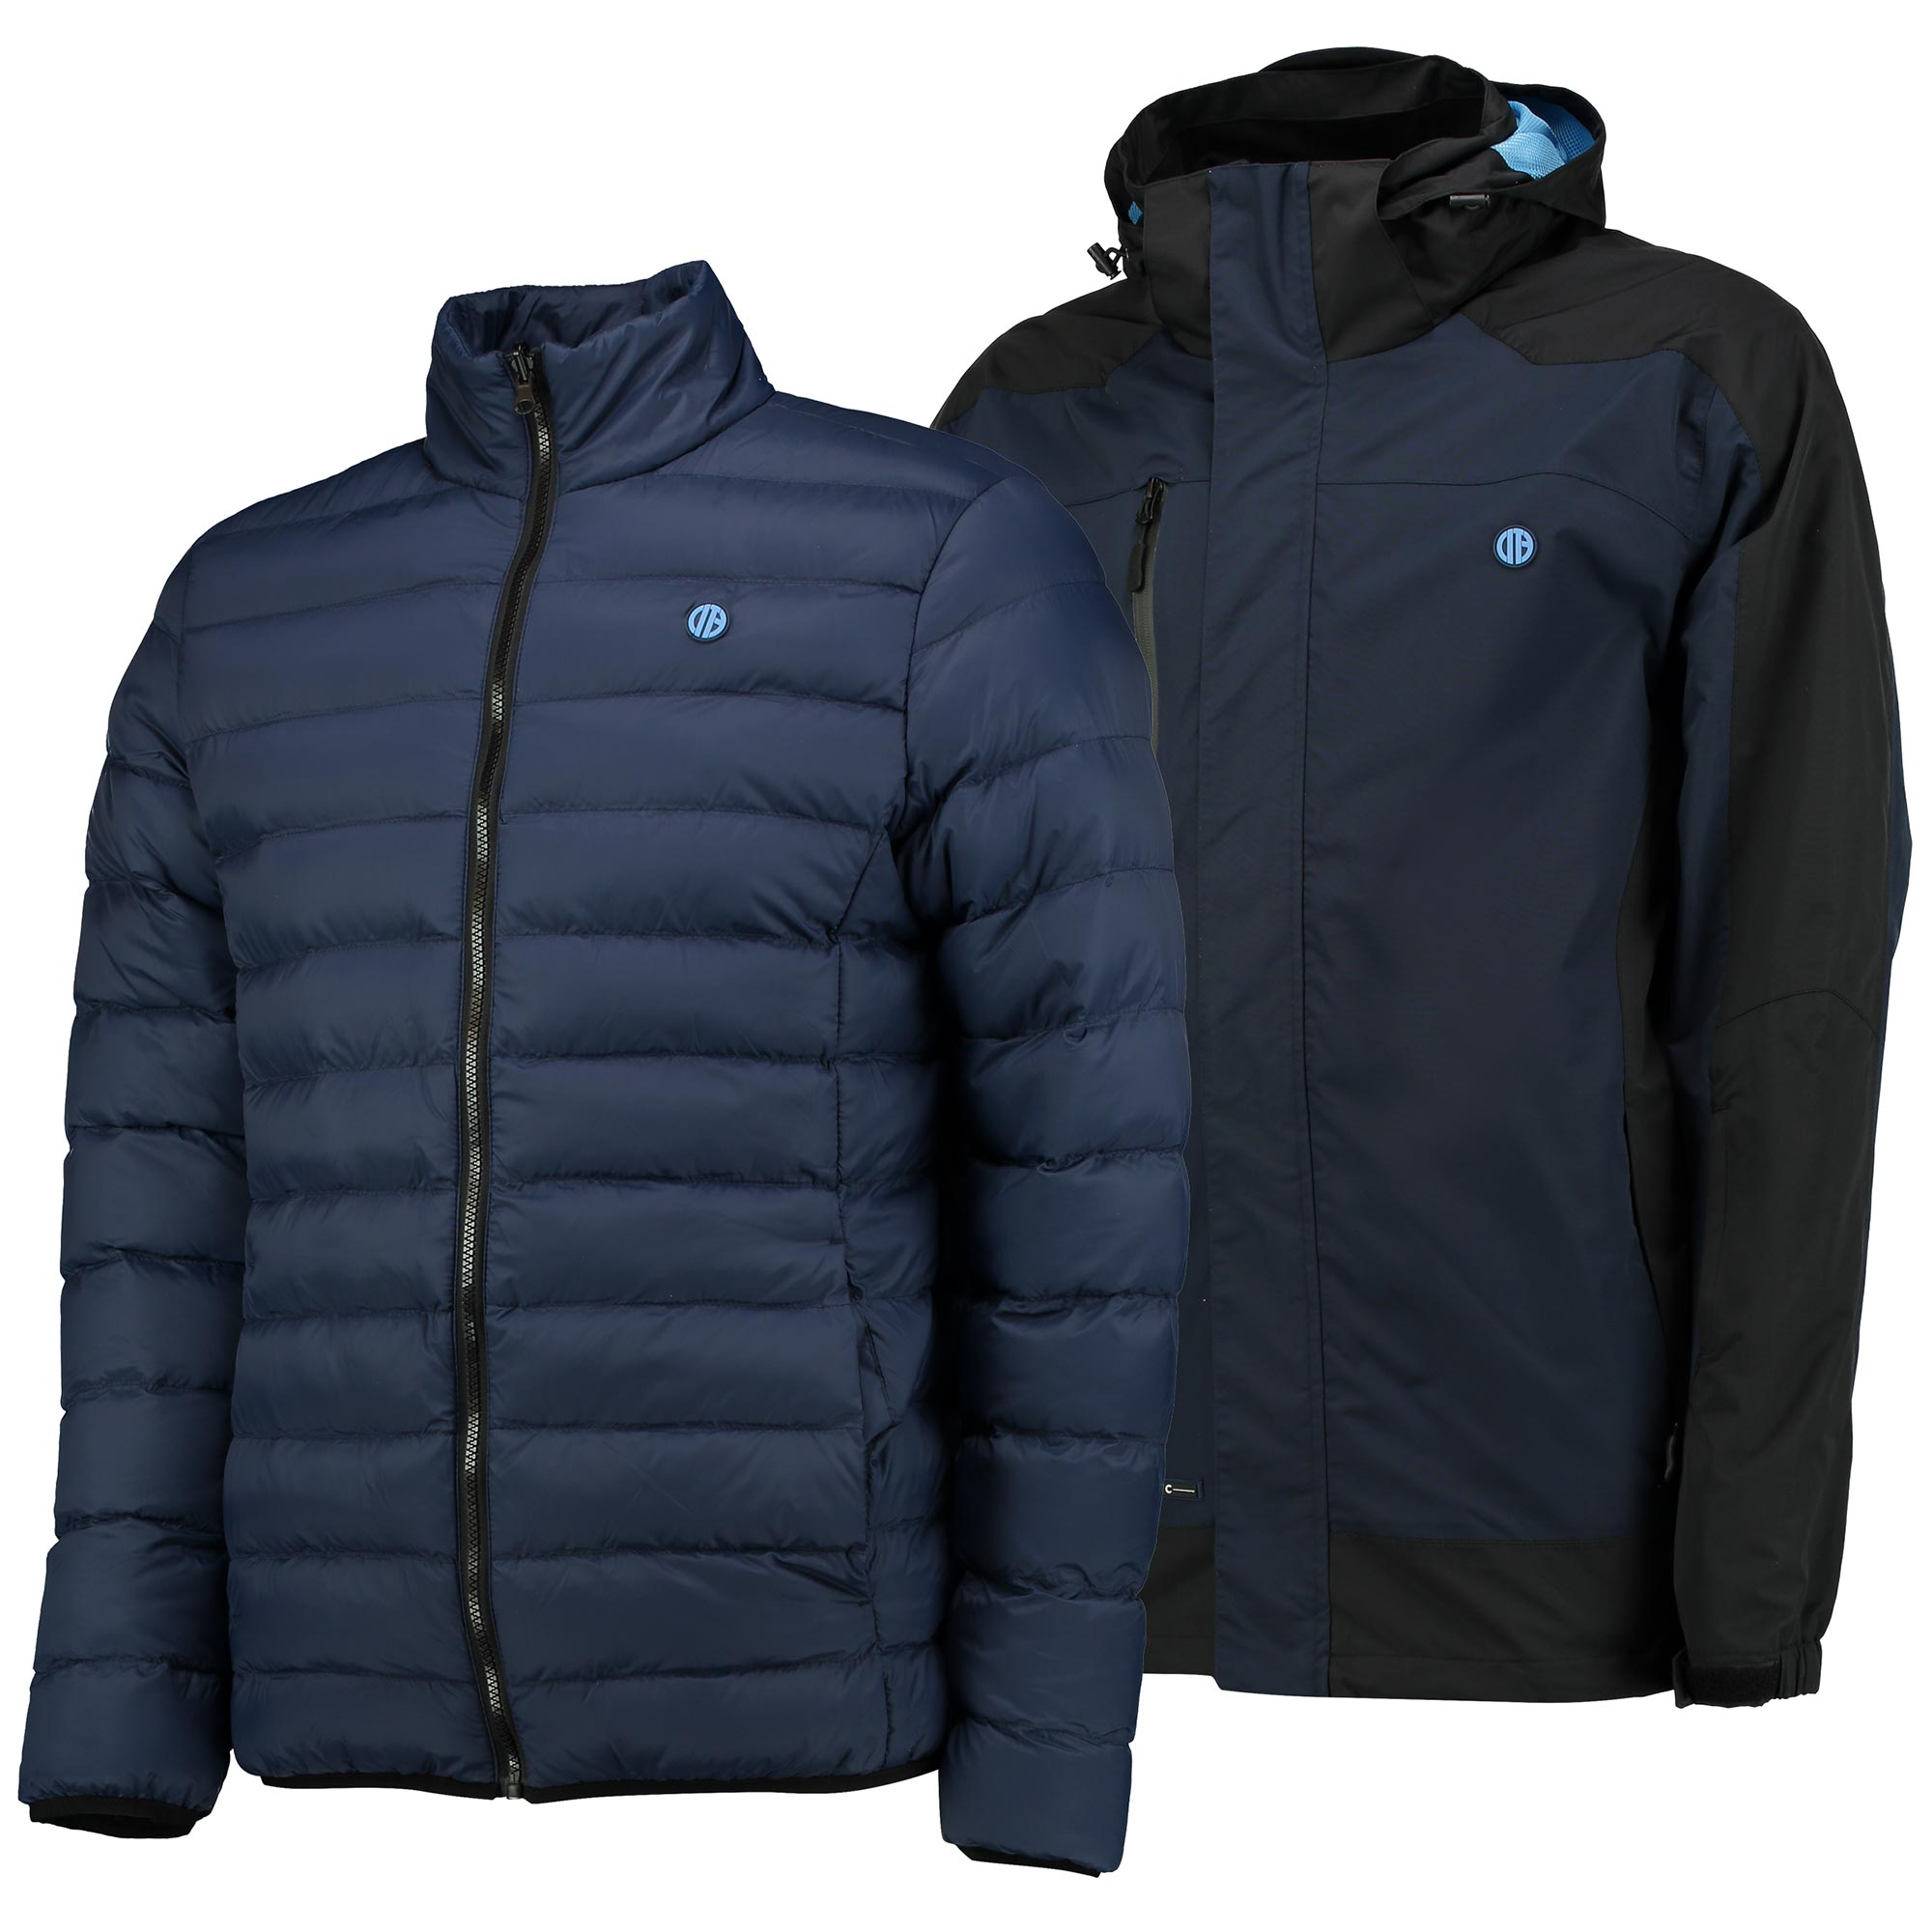 Manchester City Terrace 3 in 1 Jacket - Navy/Charcoal